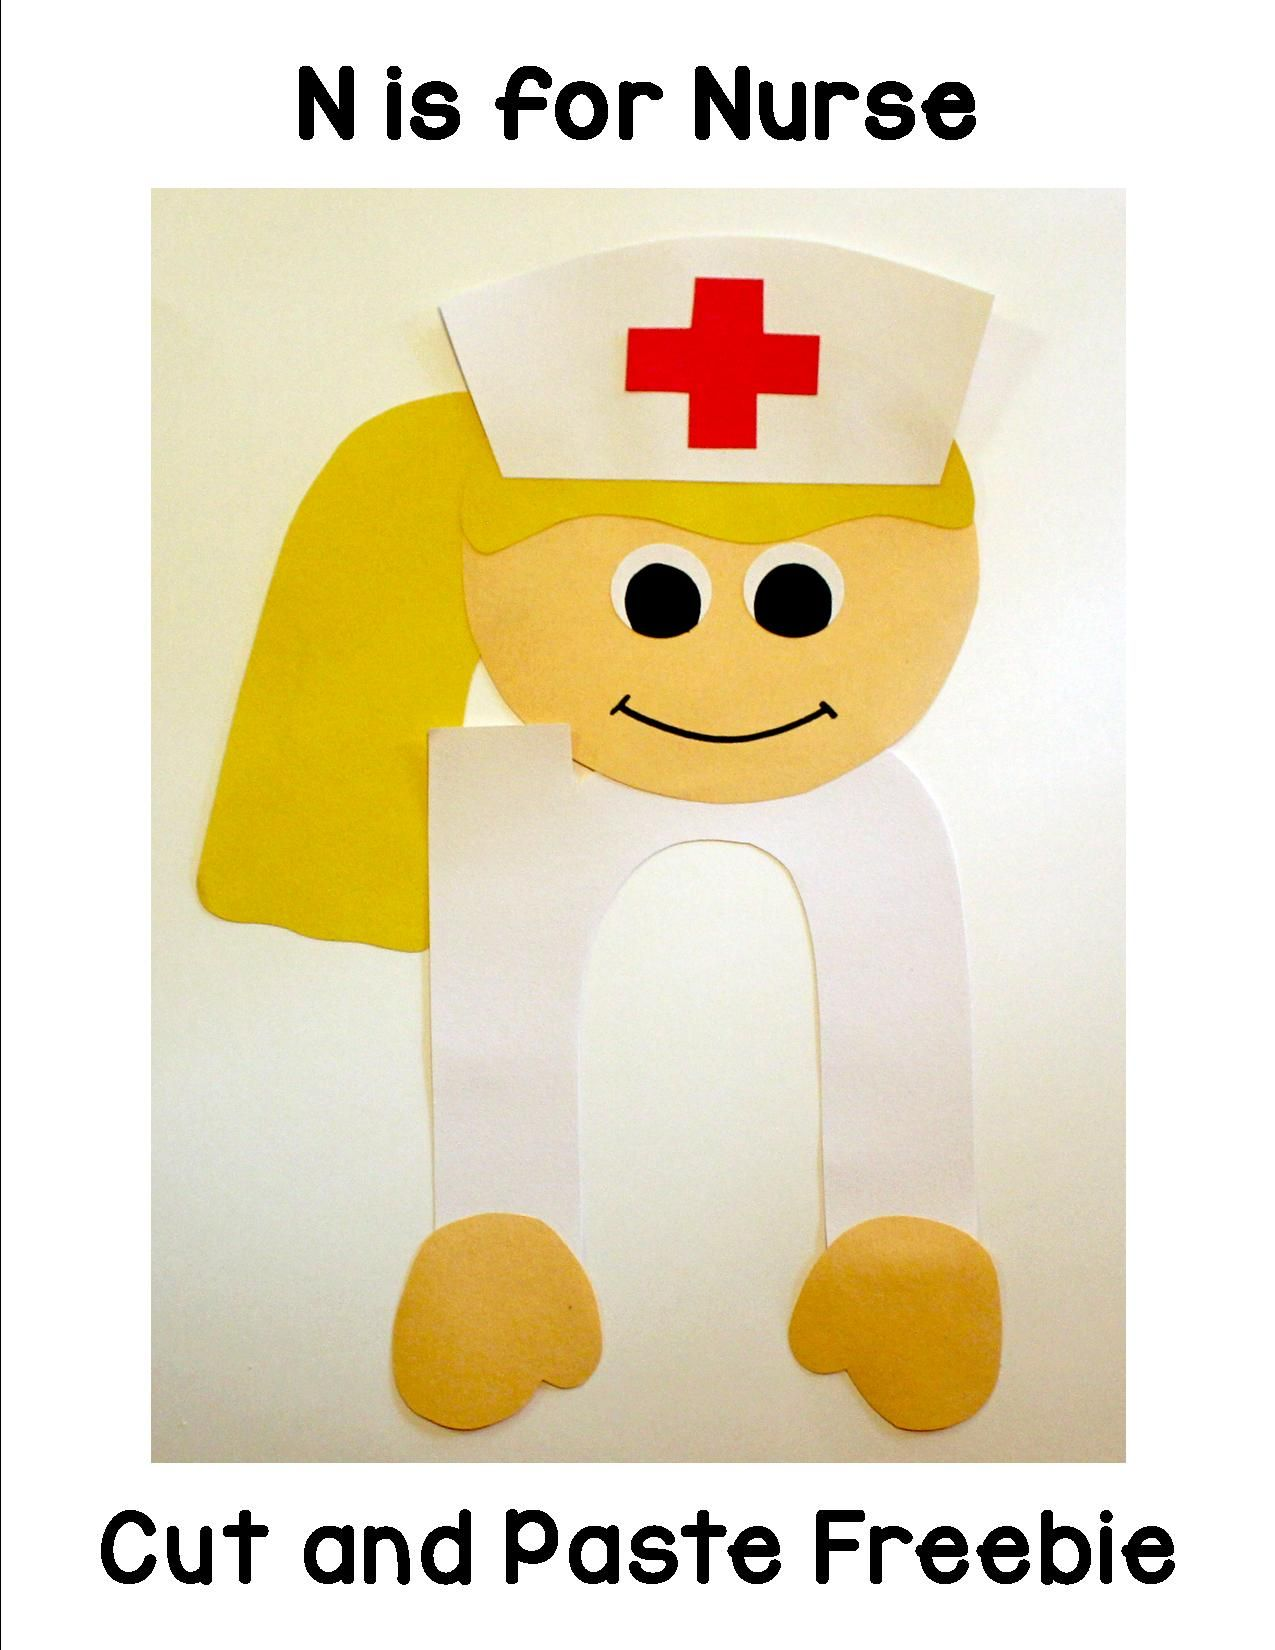 N Is For Nurse Cut And Paste Freebie That Includes Patterns And Directions